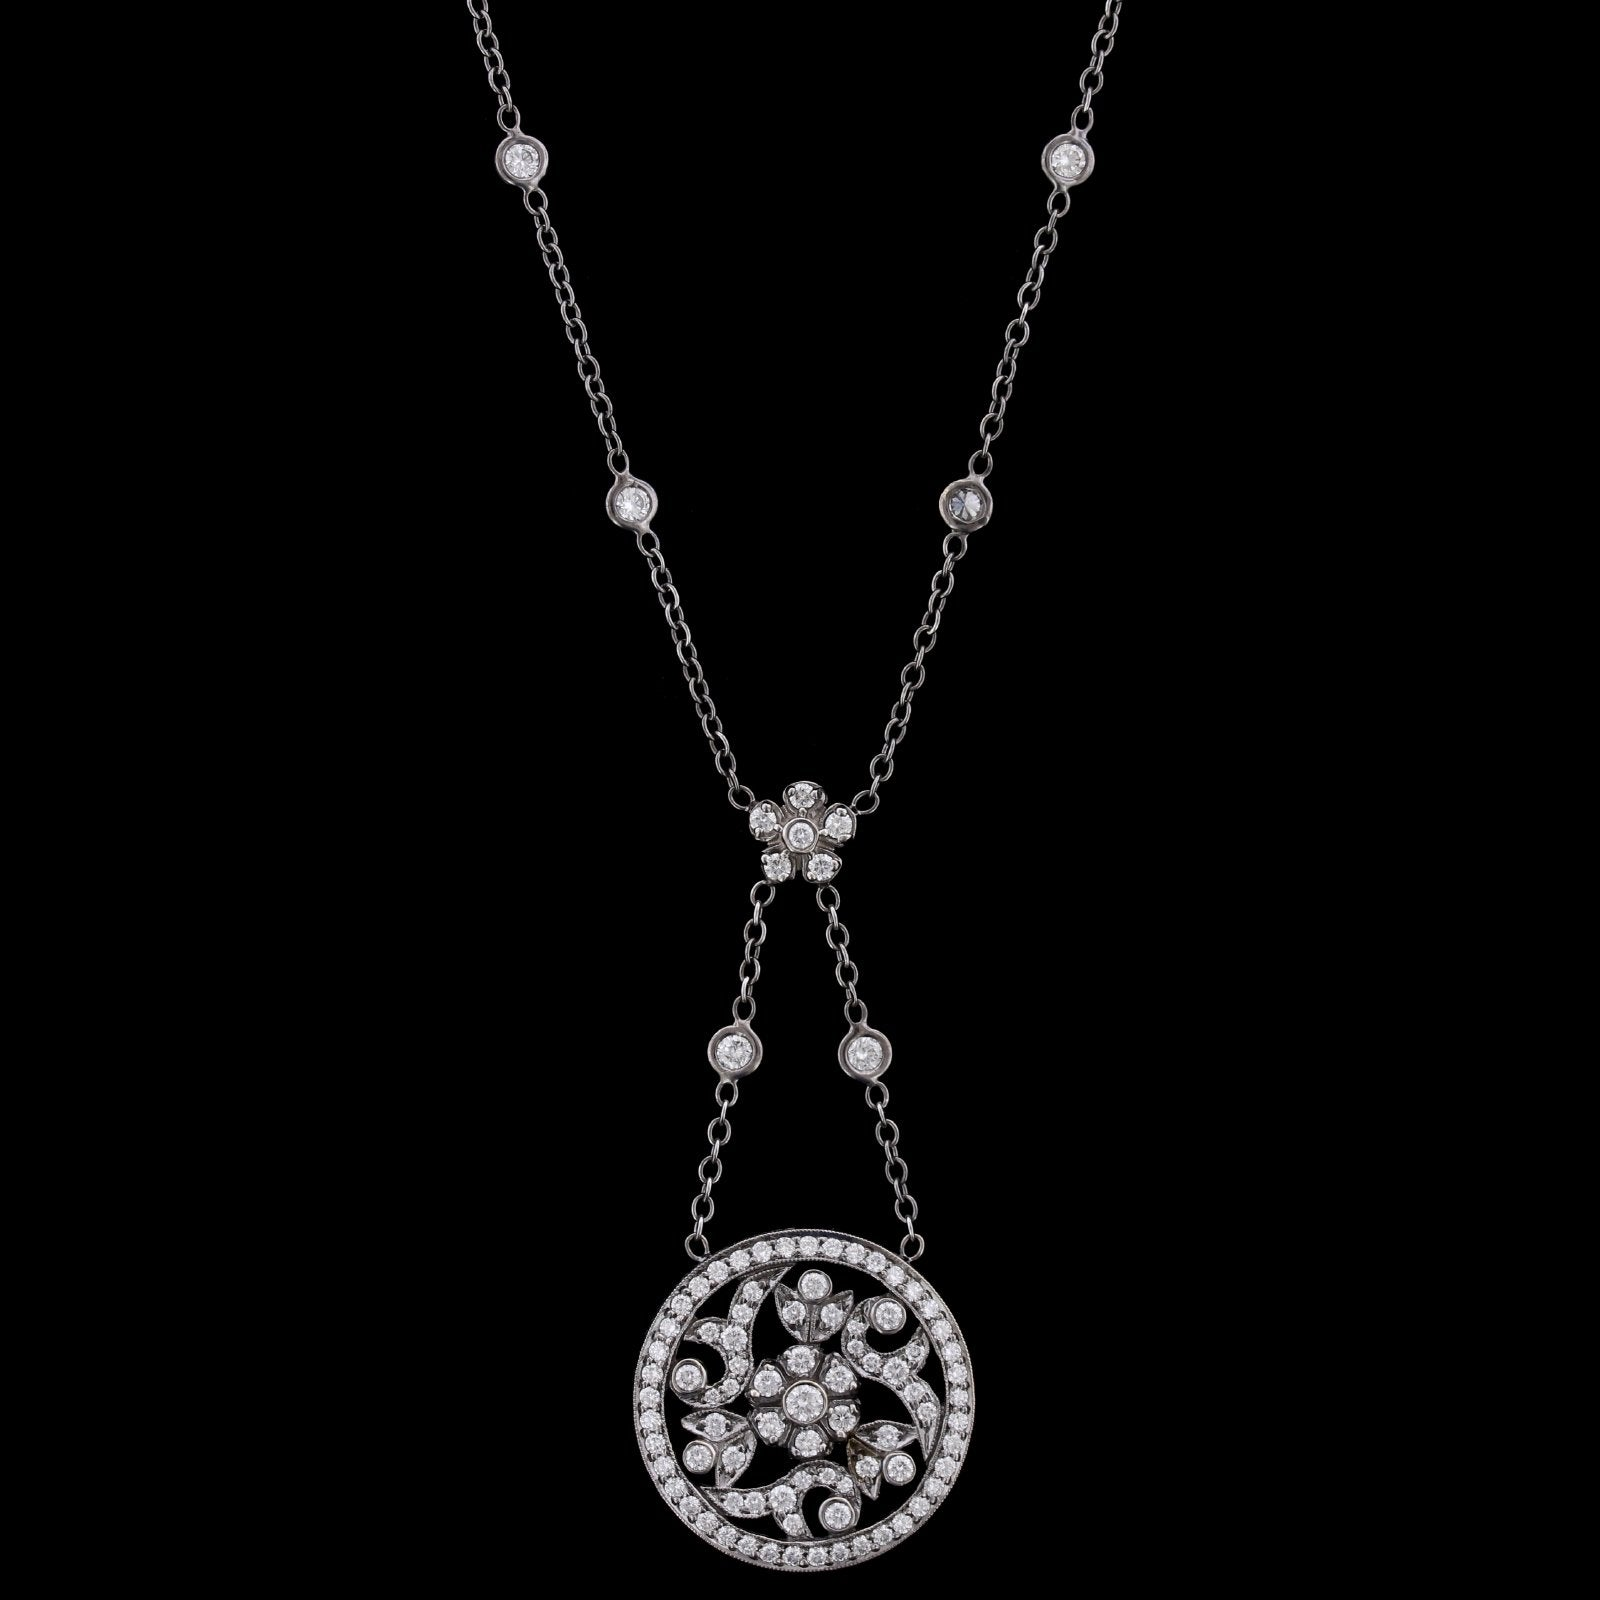 Penny Preville 18K White Gold Estate Black Rhodium Diamond Necklace